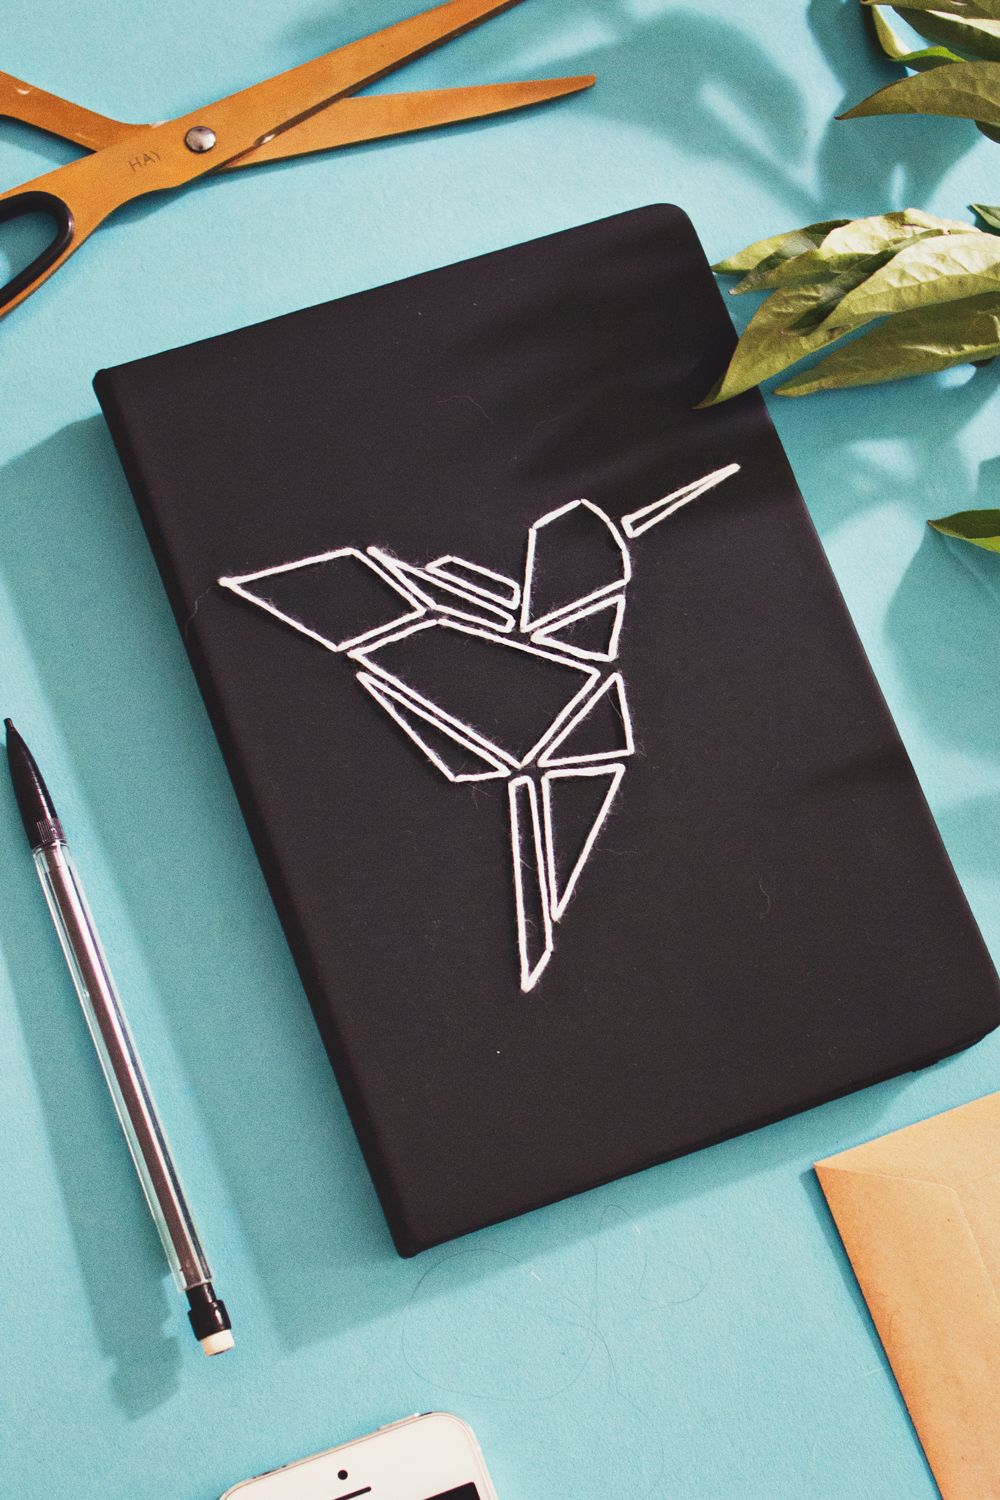 Diy do it yourself pinterest origami books book covers and upcycle your old note books with this easy embroidered origami book cover diy solutioingenieria Gallery